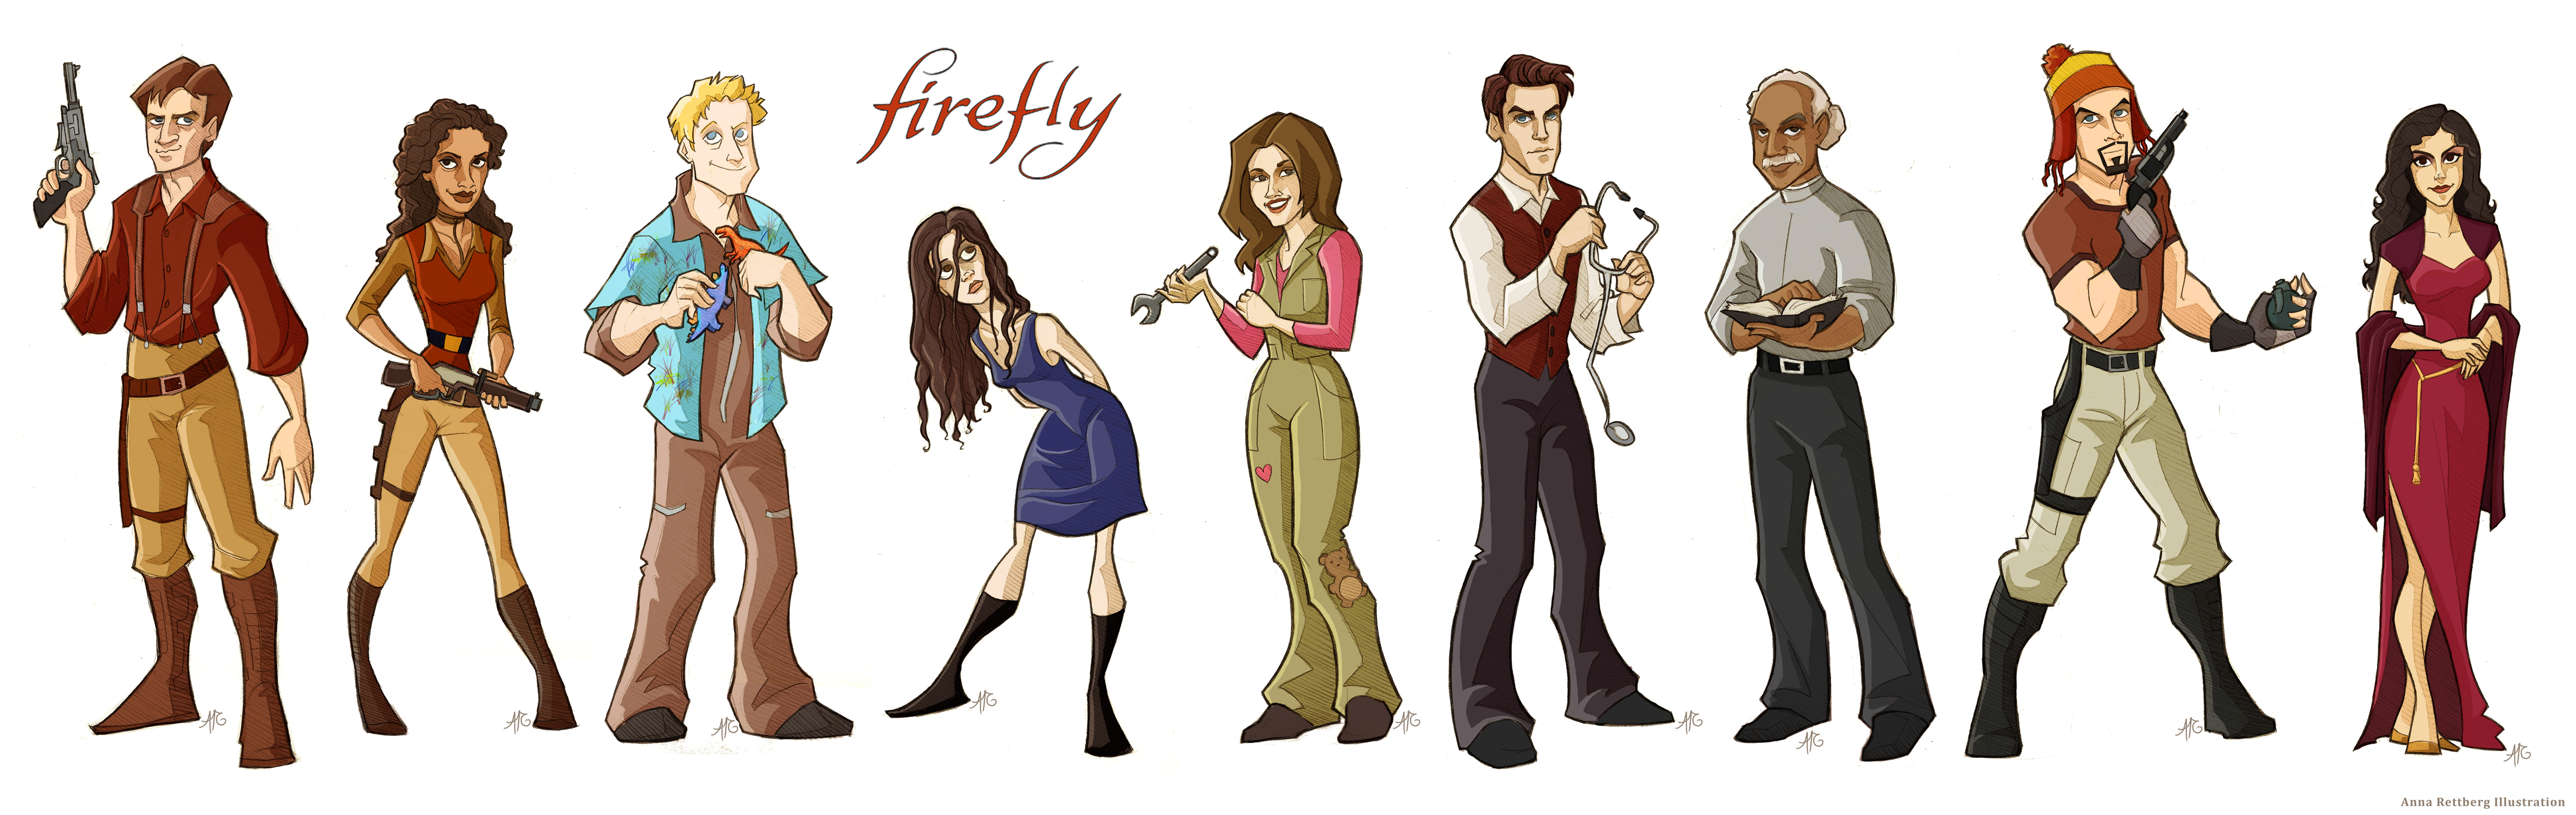 Firefly Series  TV Tropes